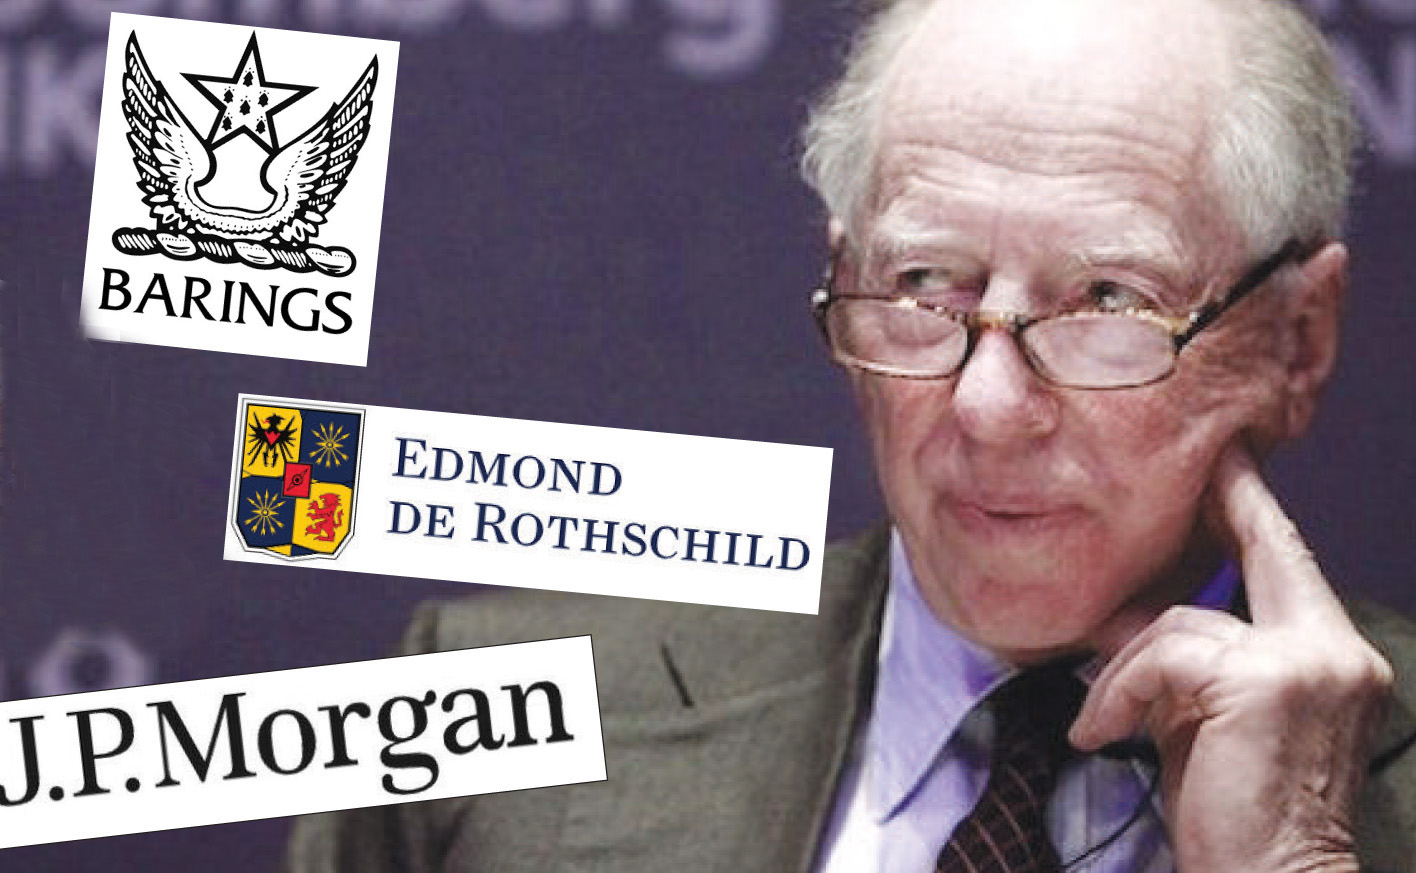 Turkey economic crisis hits renowned investors like Rothschild, JP Morgan